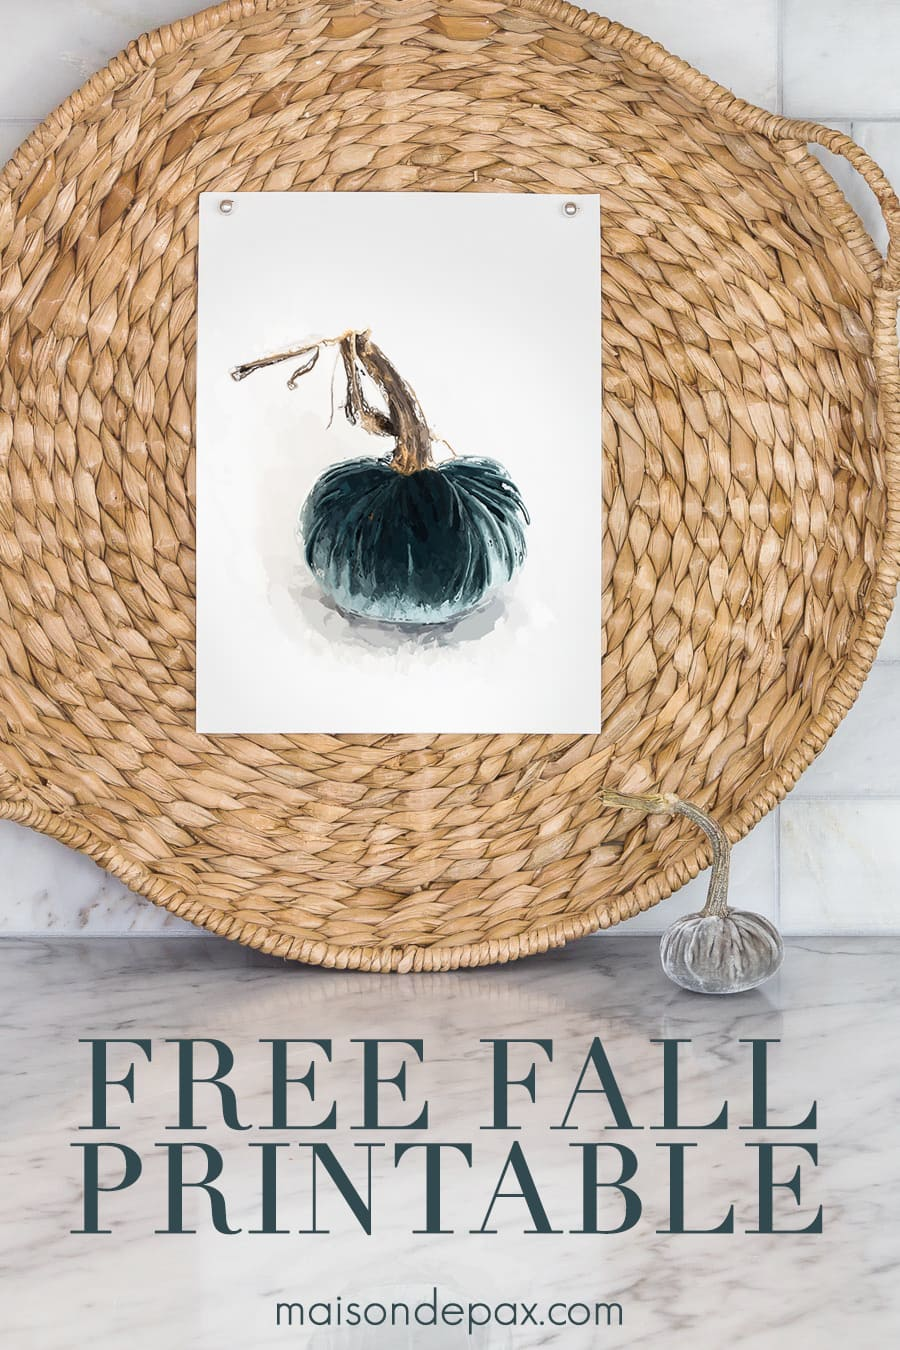 Get this free printable velvet pumpkin painting + 30 other free fall printables! #fallprintable #fallart #pumpkin #velvetpumpkin #pumpkinprintable #pumpkinart #wallart #falldecor #falldecorating #freeprintable